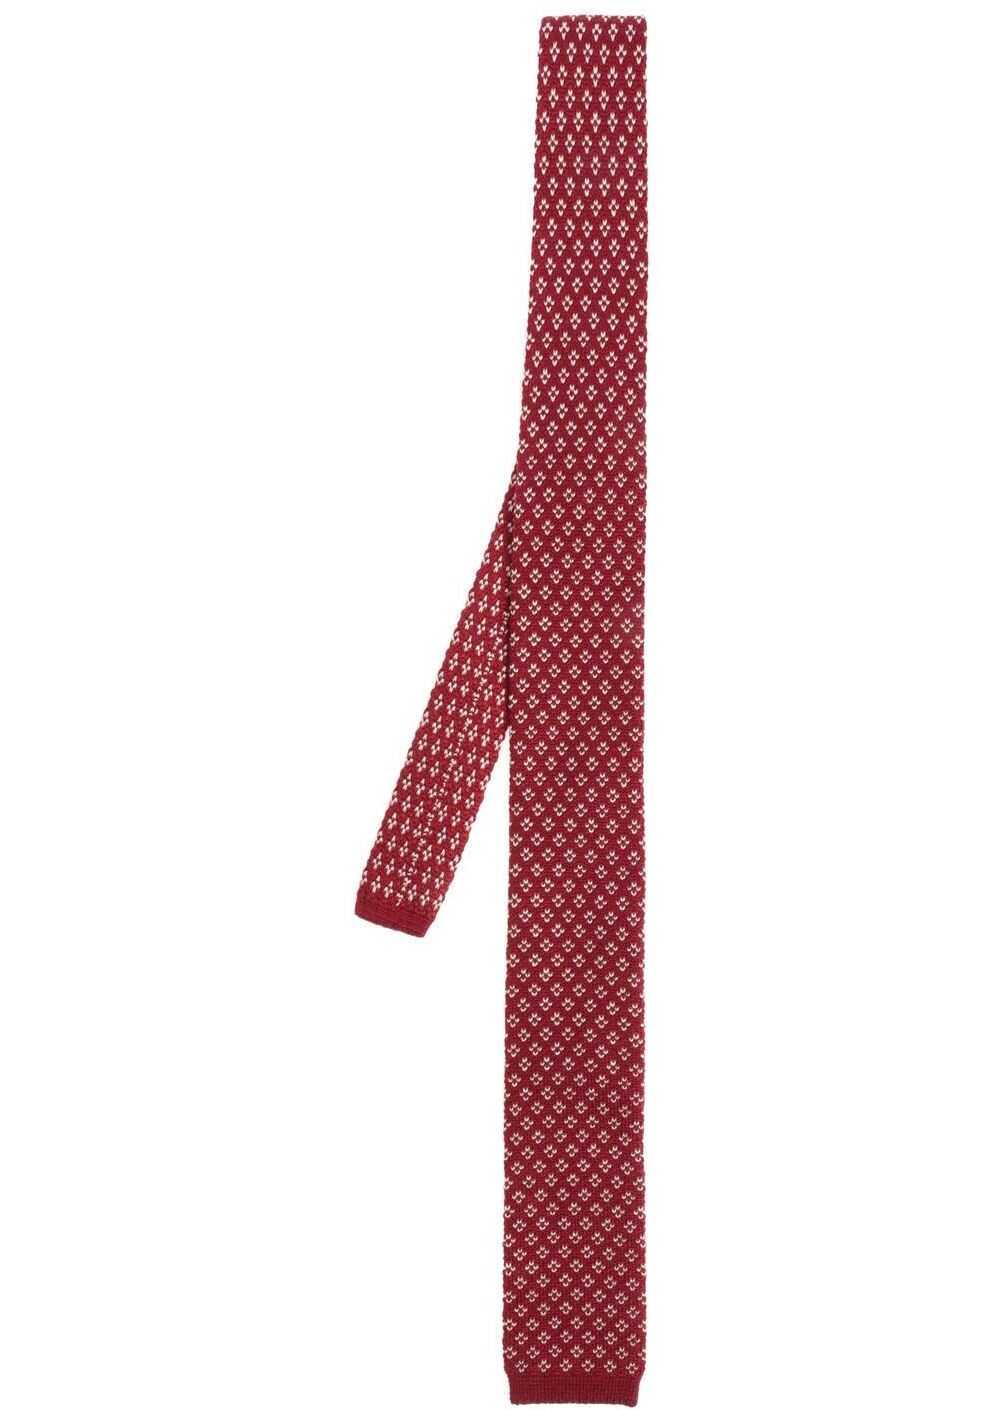 Missoni Burgundy And White Knit Tie Red